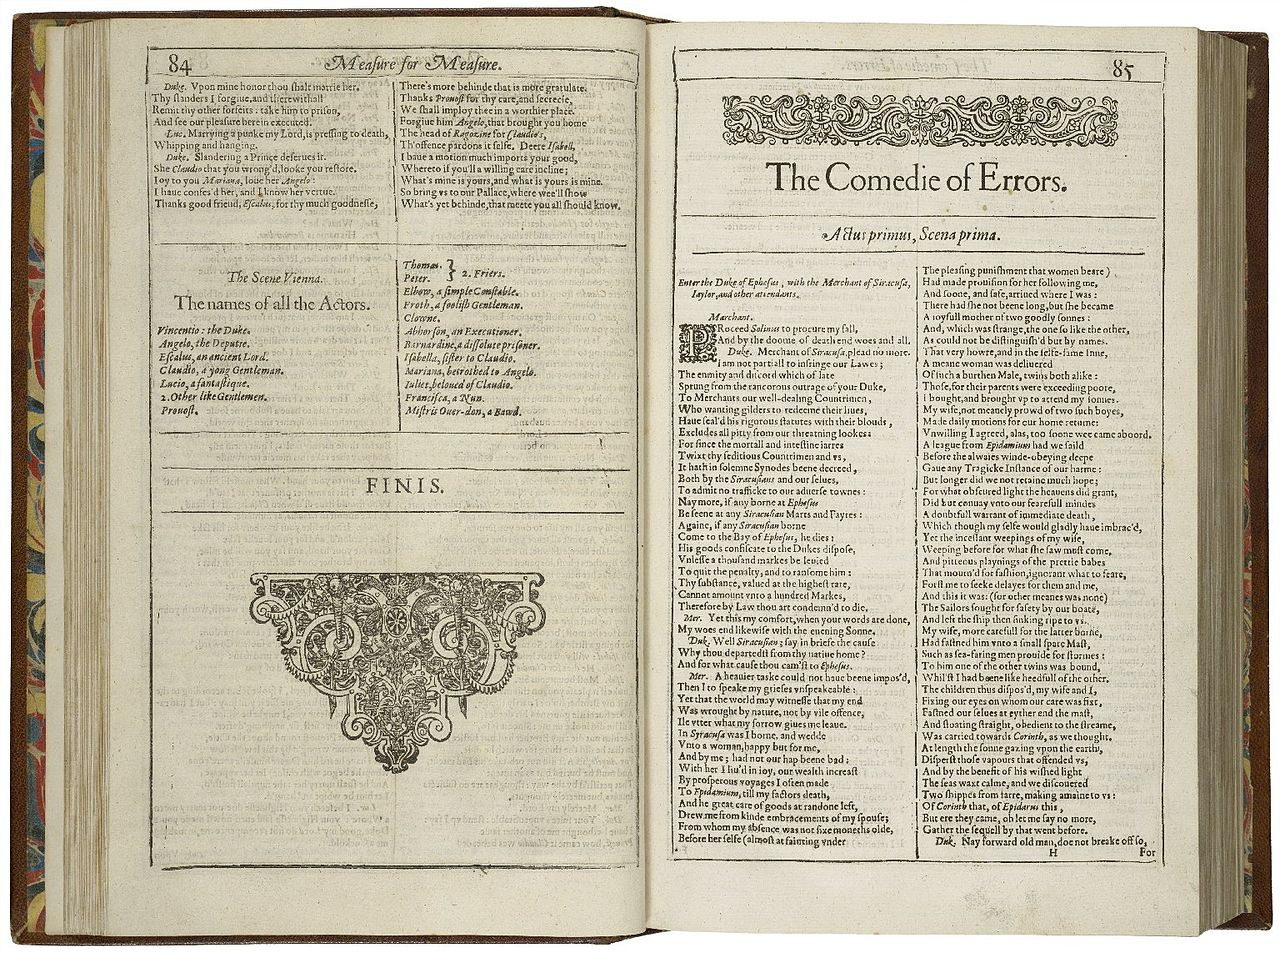 a description of shakespeares first comedy the comedy of errors Comedy is a literary genre and a type of dramatic work that is amusing  ben johnson is the first dramatist who conceived and popularized this dramatic genre during.